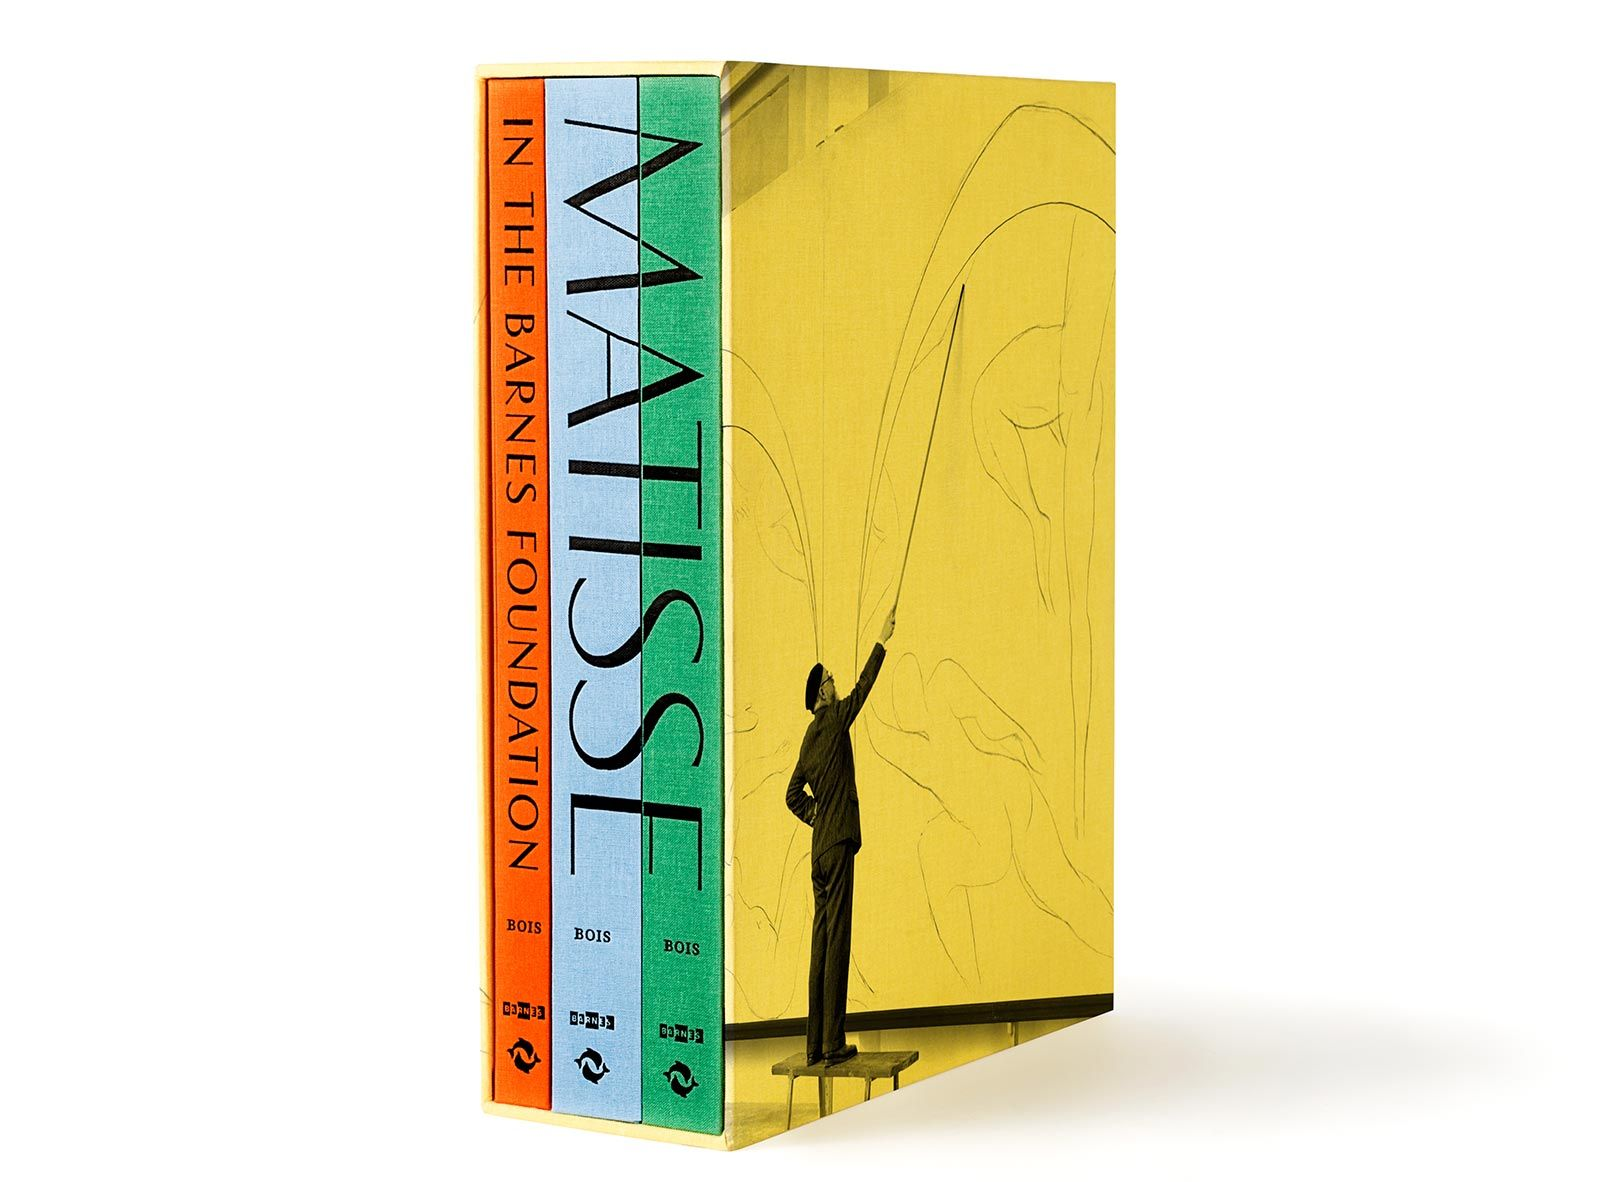 'Matisse in the Barnes Foundation' Slipcased three-volume set that presents the Barnes Foundation's complete holdings of Matisse, one of the most significant collections of the artist's work in the world.   Pentagram